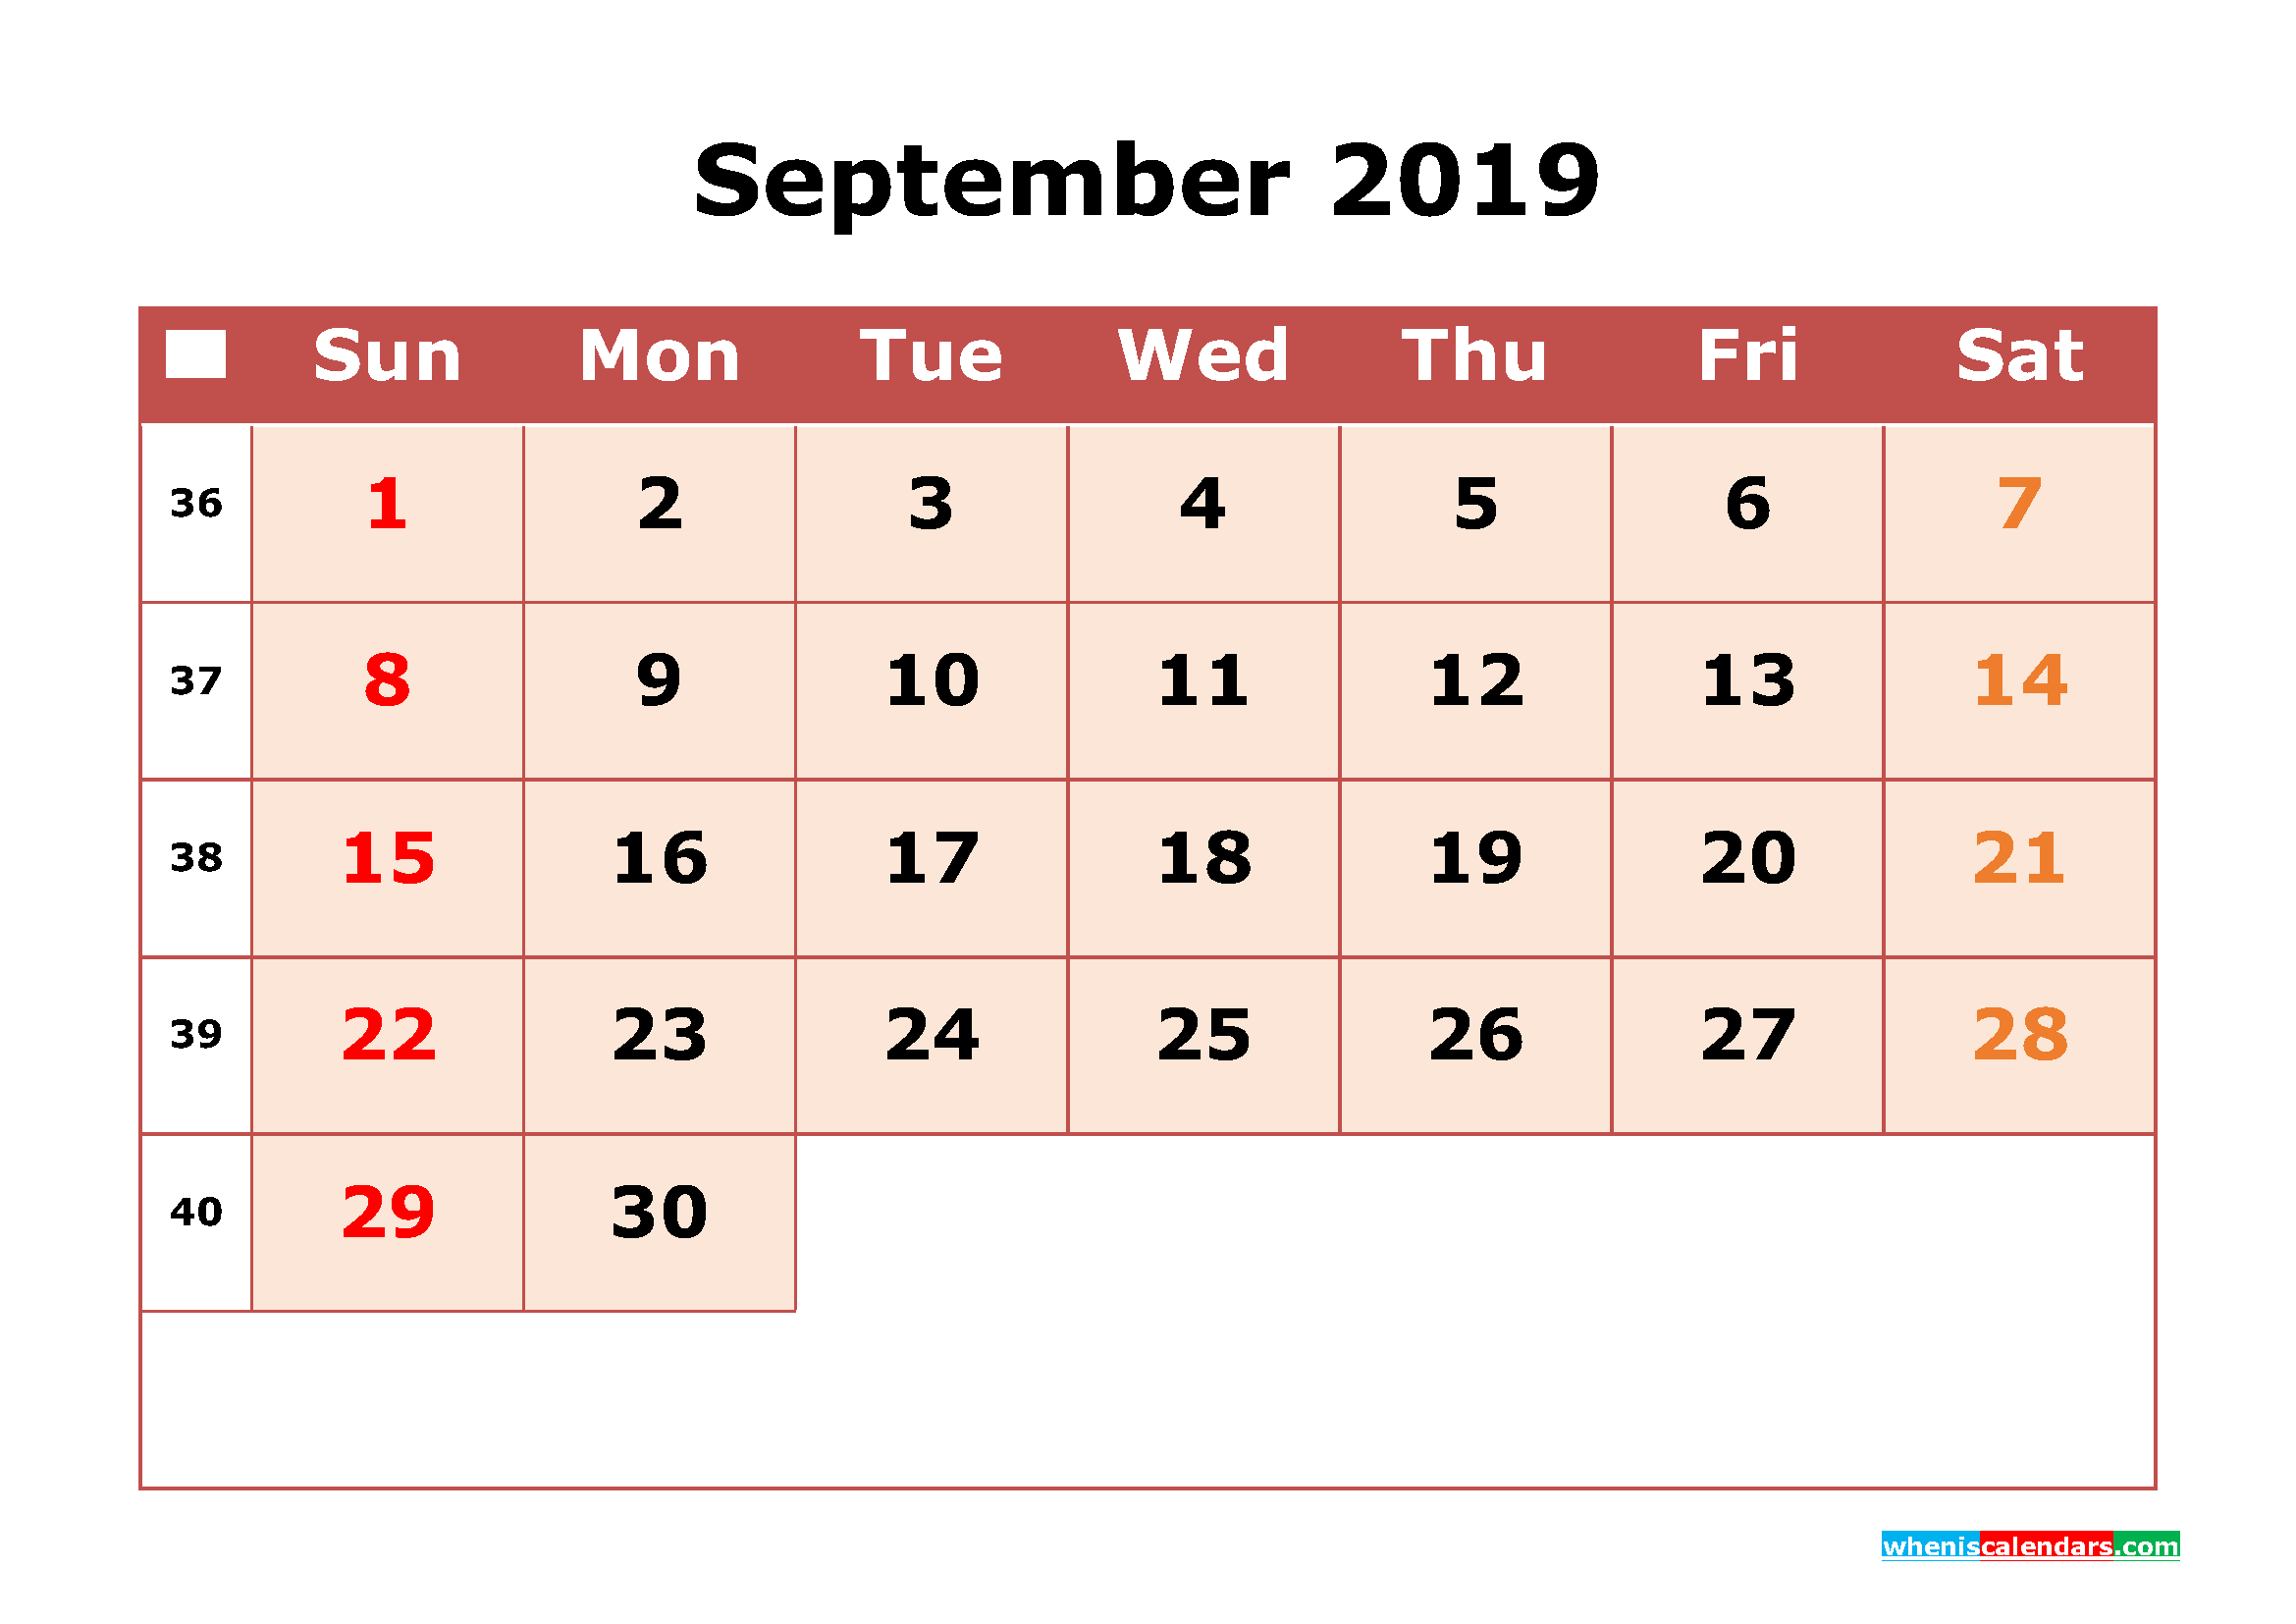 Get Free September 2019 Printable Calendar with Week Numbers as PDF, Image